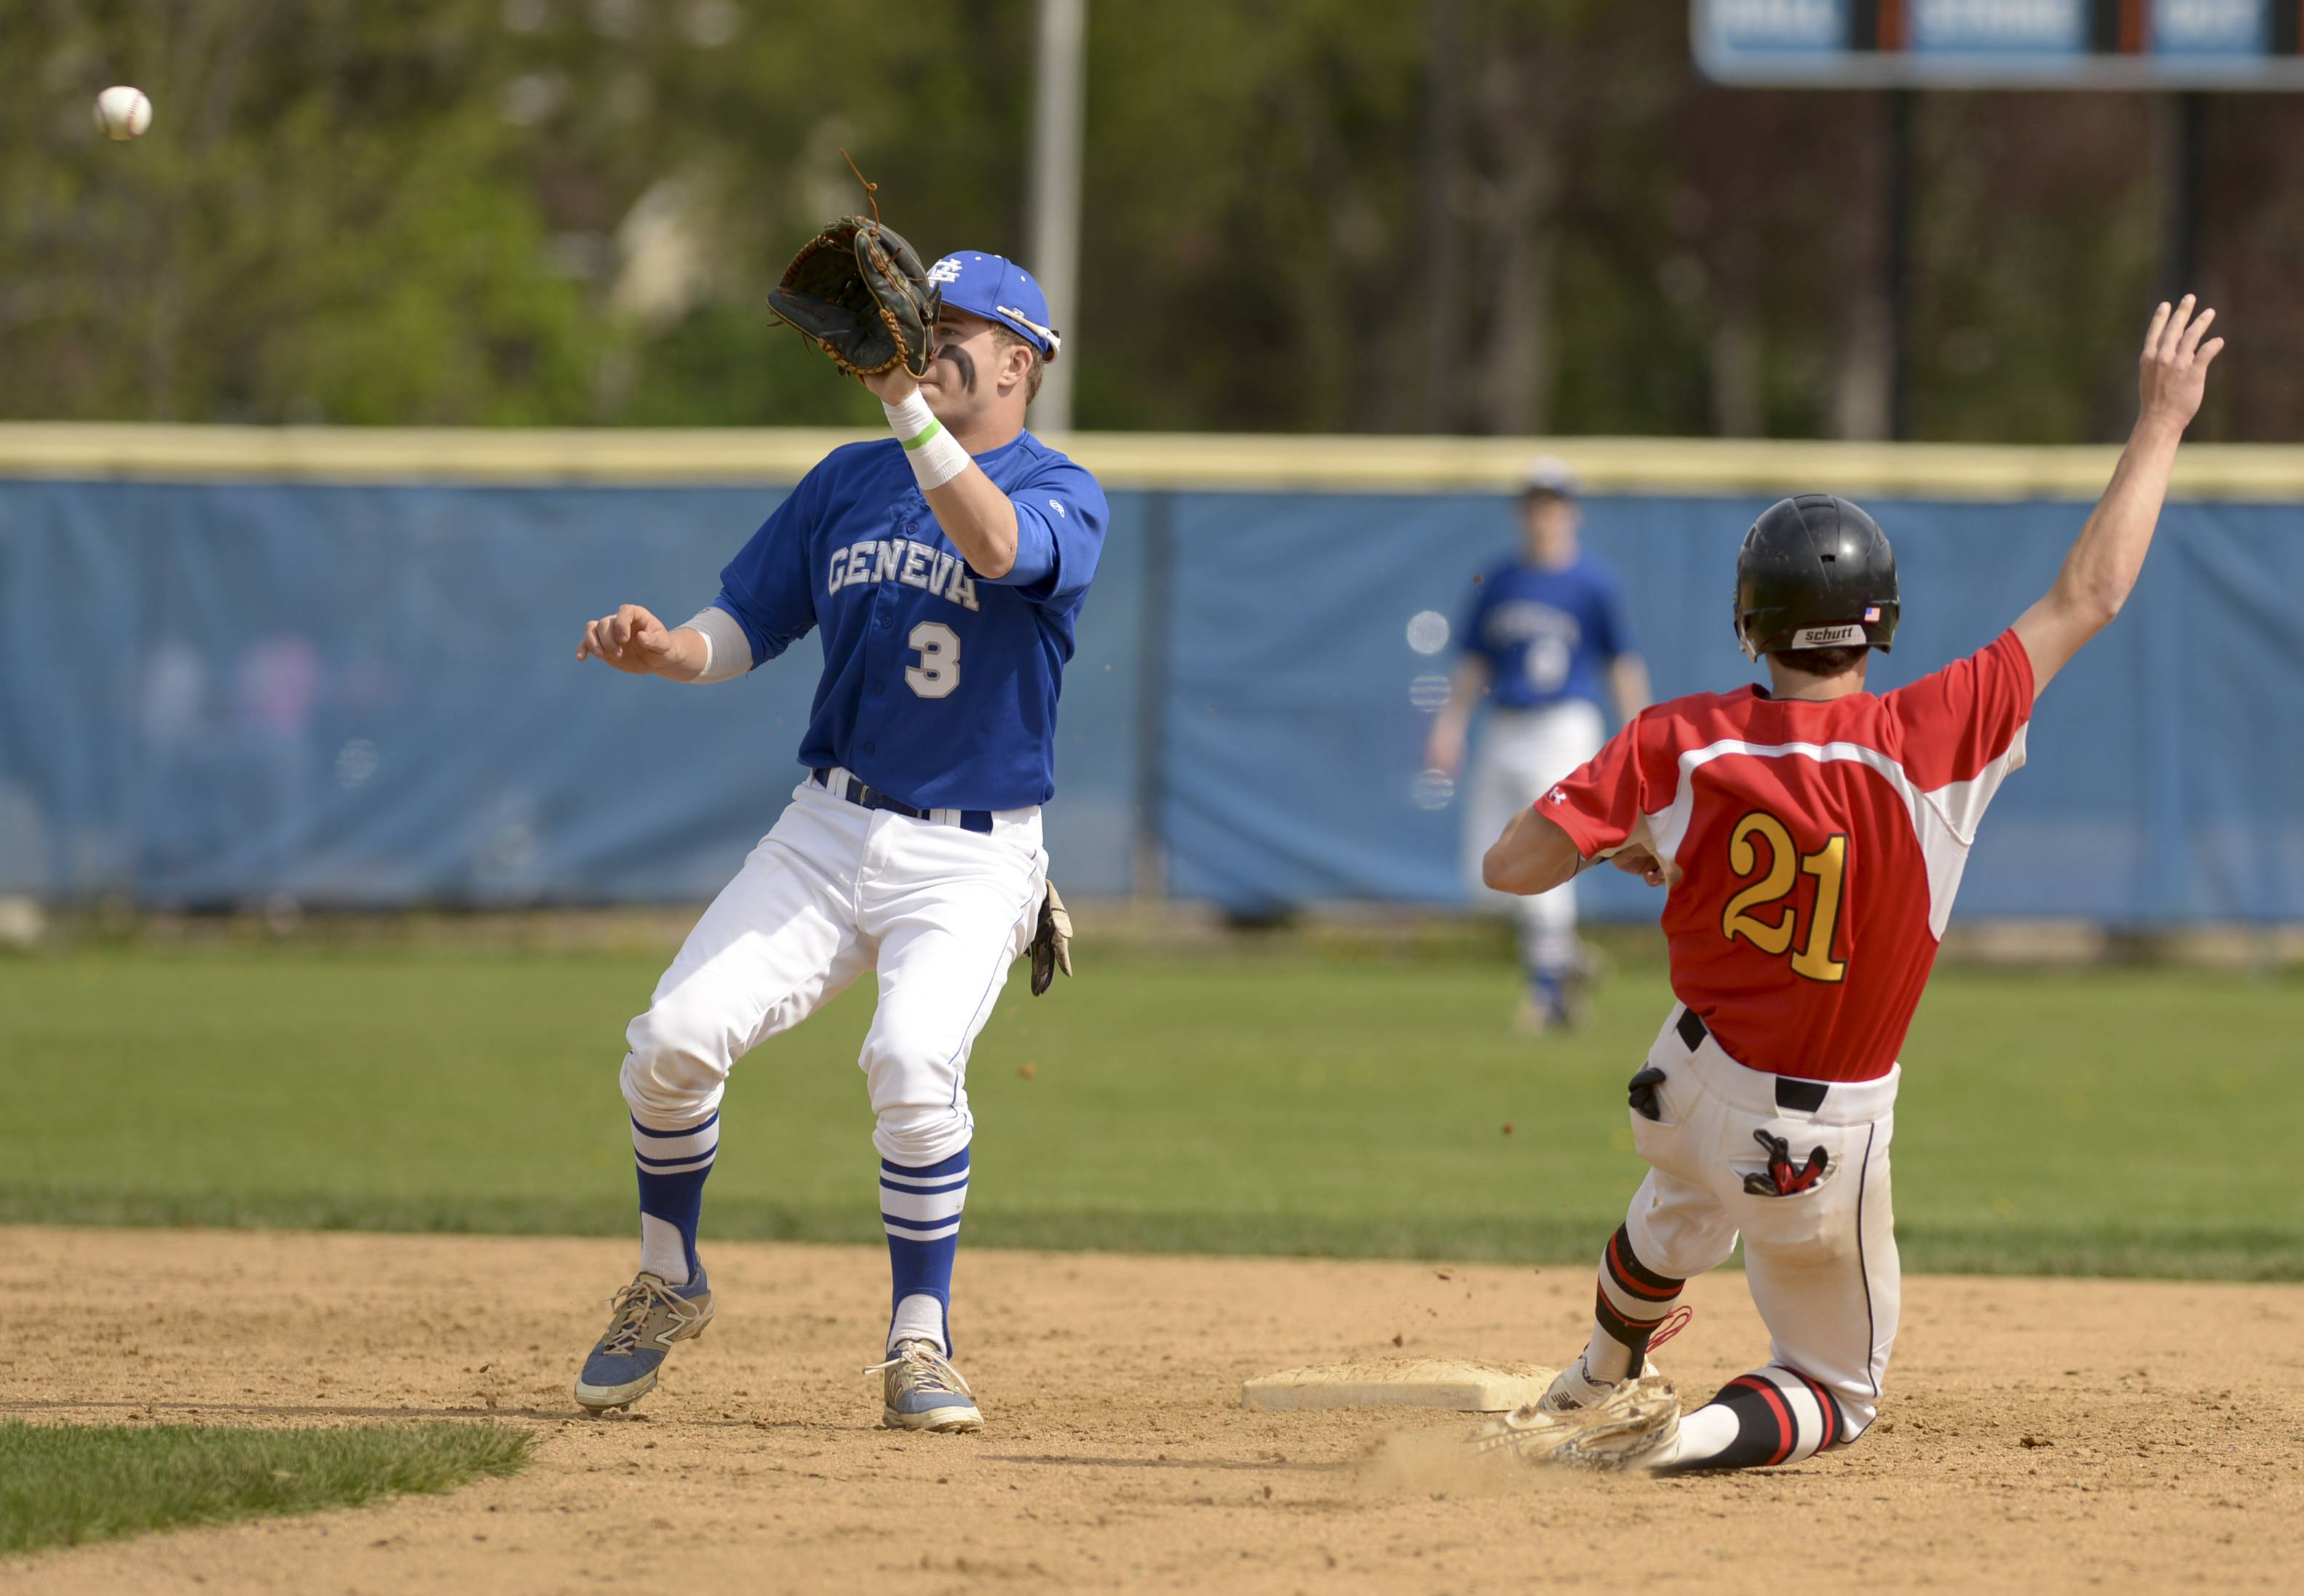 Geneva's Nick Derr come up shot as Batavia's Jeremy Schoessling slides safely into second, during baseball in Geneva Saturday.